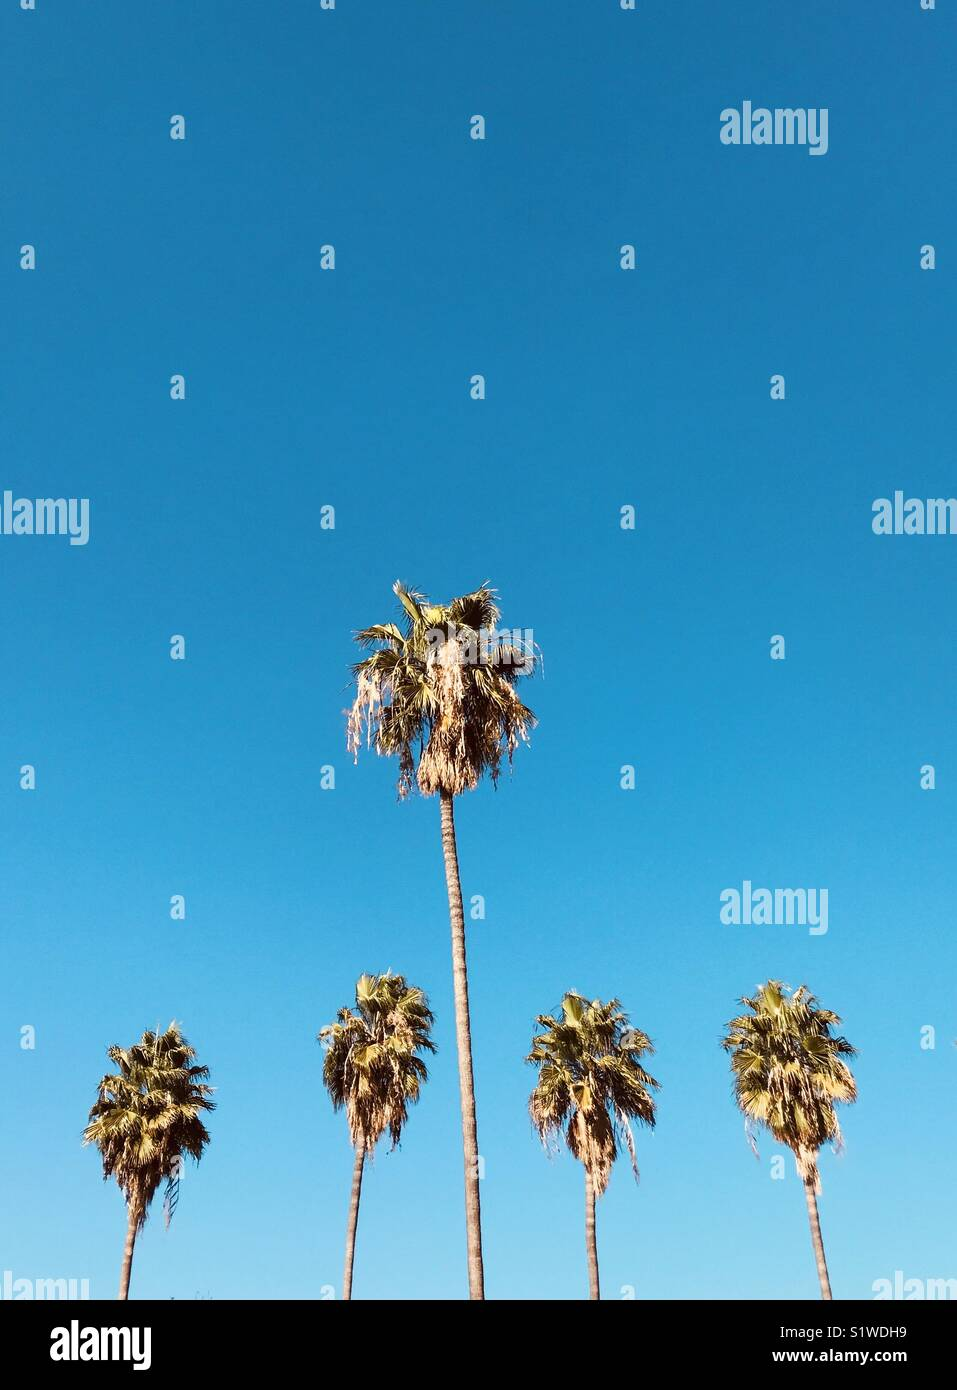 Five palm trees and blue sky. Los Angeles, California USA. - Stock Image